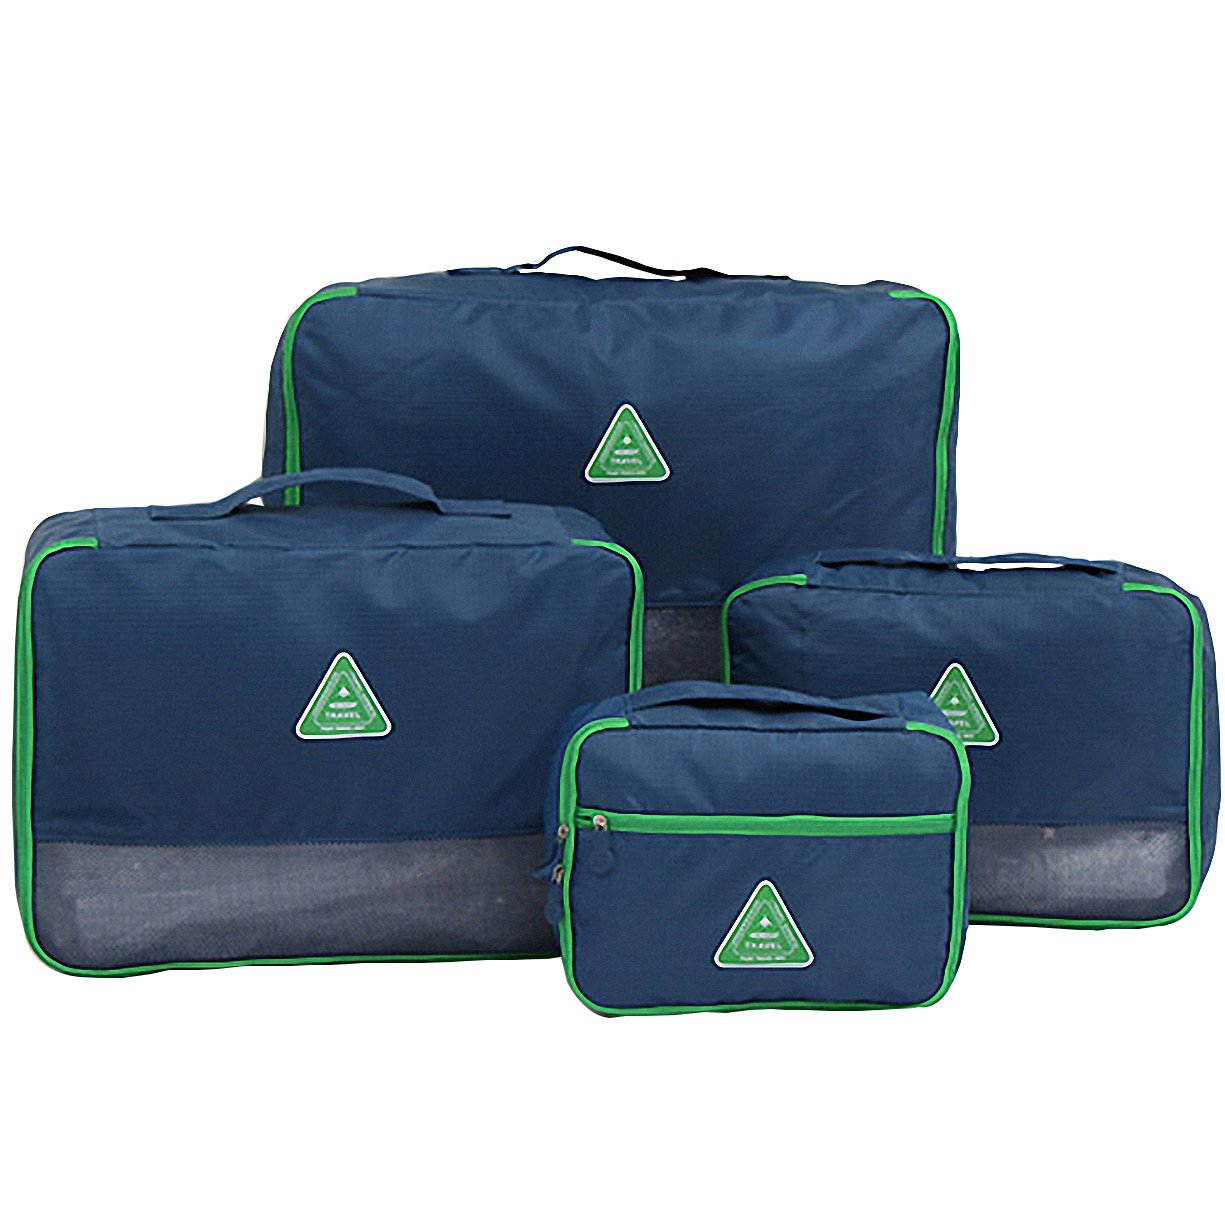 Travel Packing Organizers - Clothes Cubes Shoe Bags Laundry Pouches For Suitcase Luggage, Storage Organizer 4 Set Color Navy